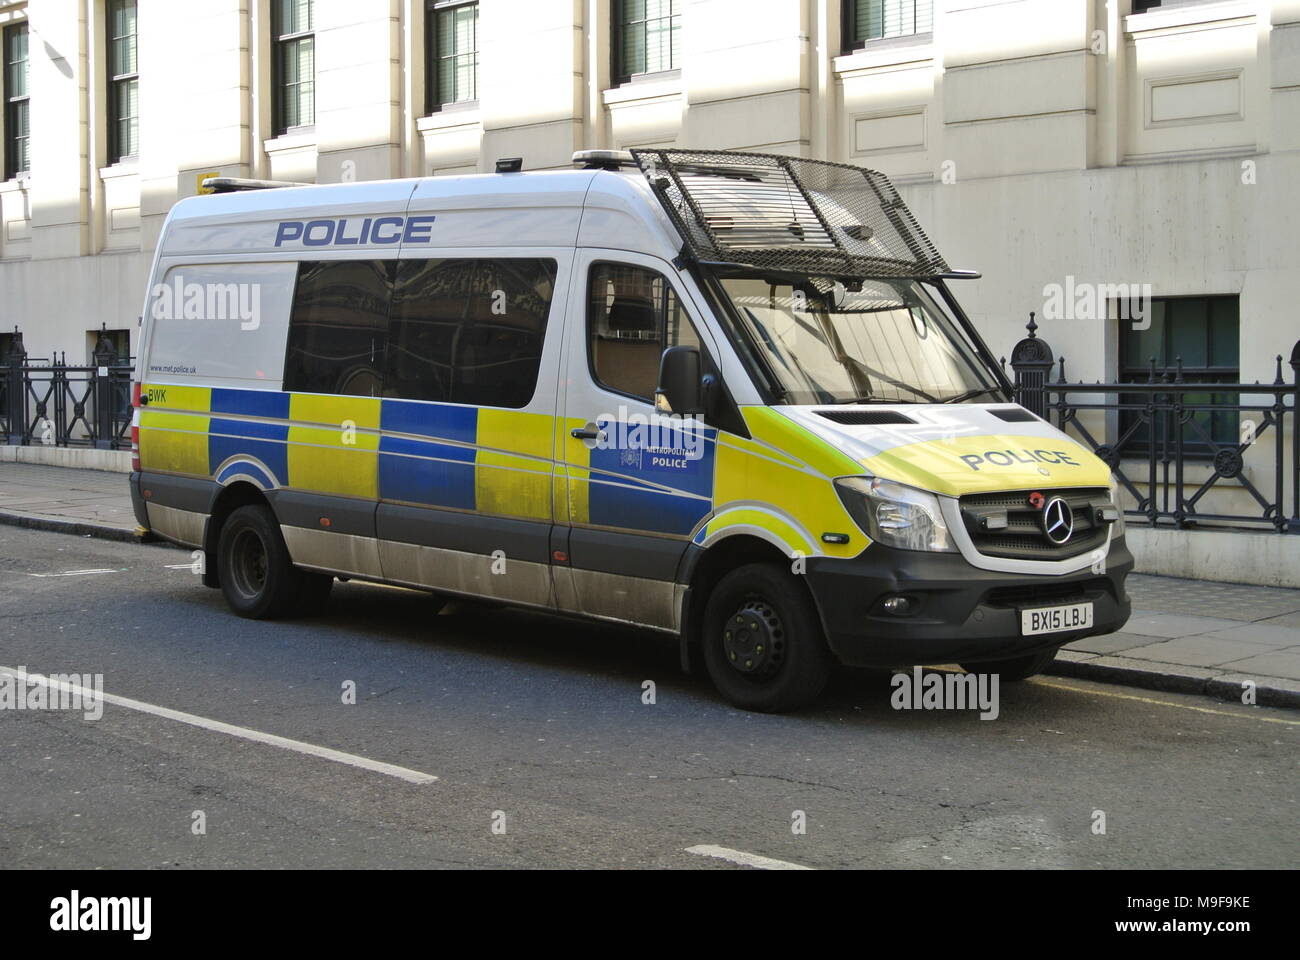 Metropolitan Police marked van parked next to a pavement, London, England, UK - Stock Image